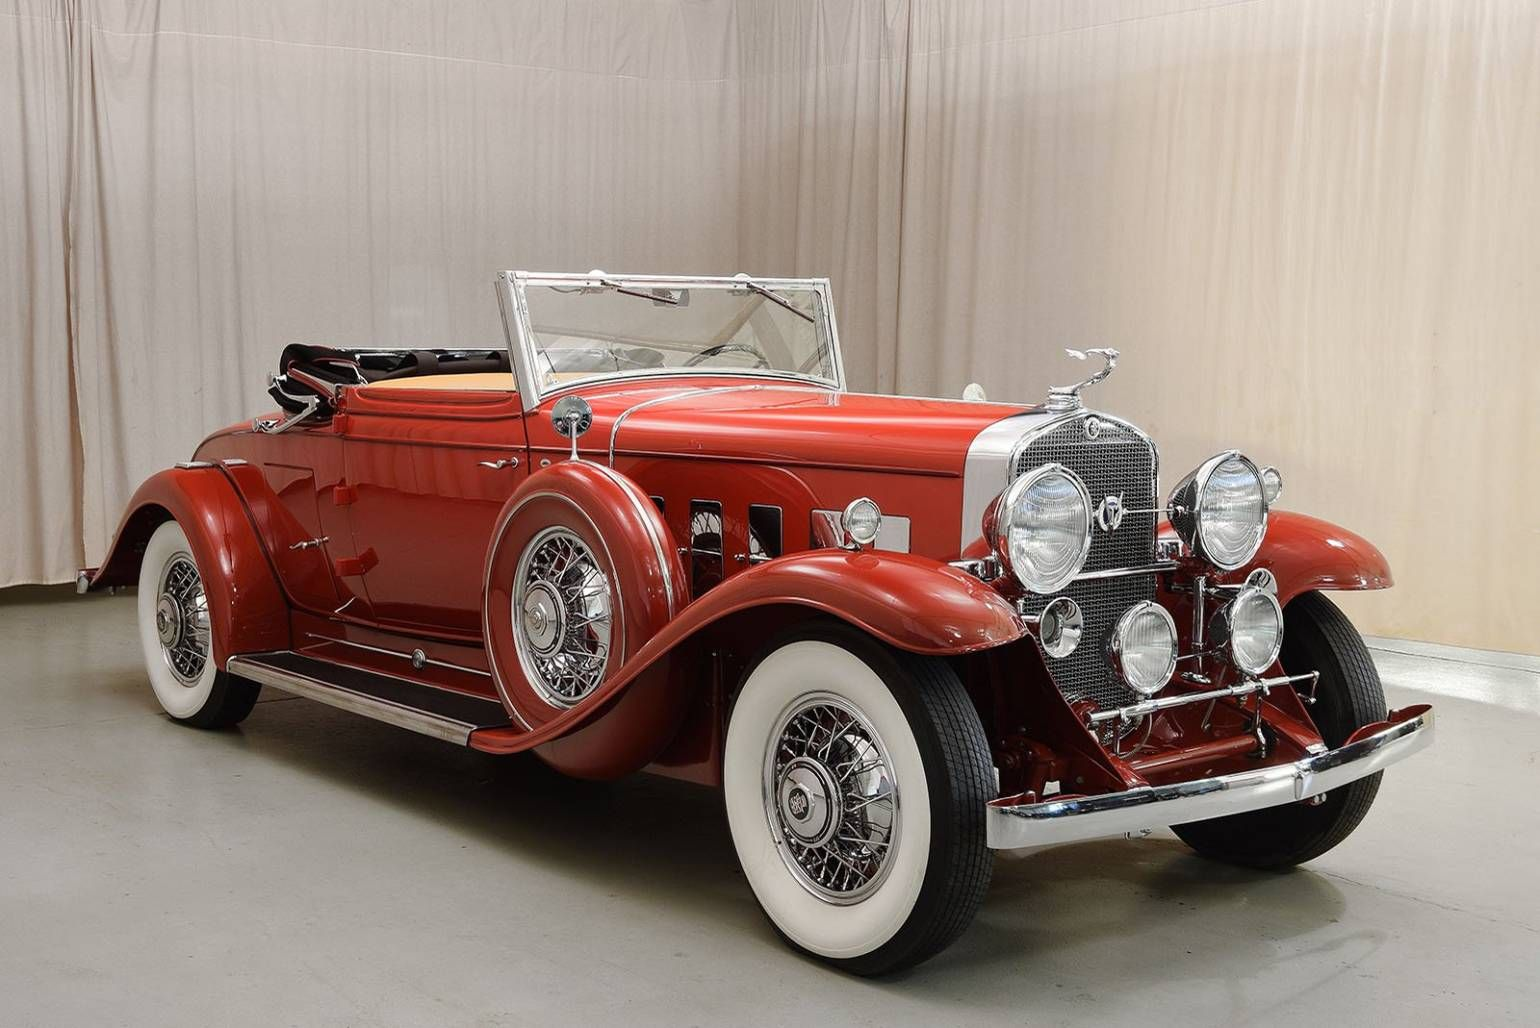 1931 Cadillac 370A Convertible Coupe for sale #1781592 | Hemmings ...